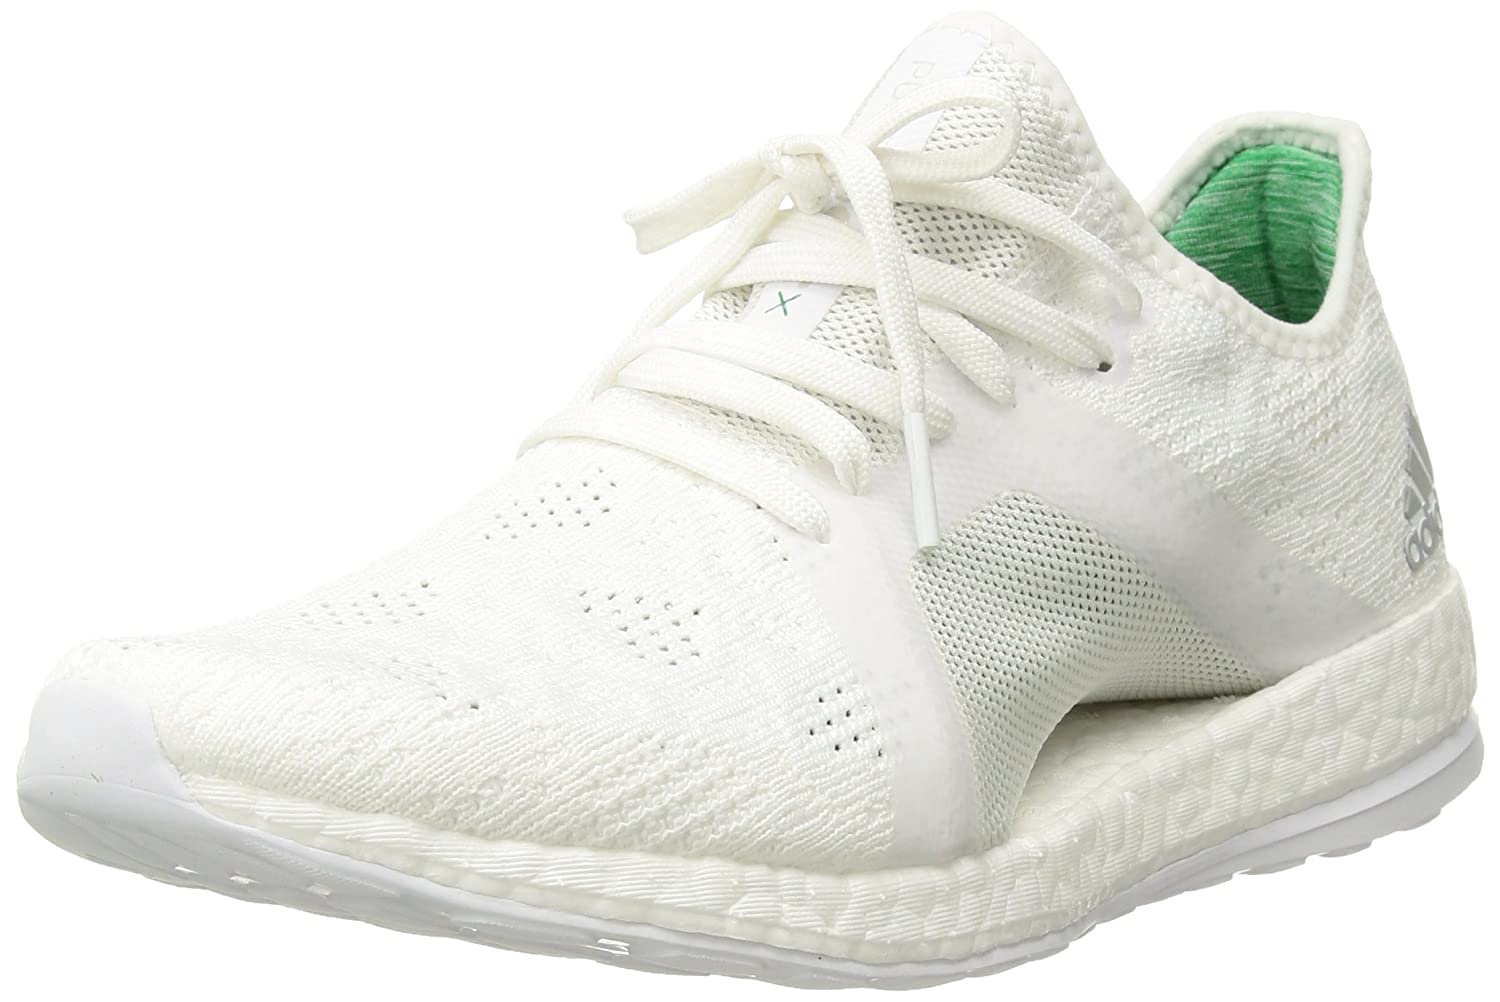 White Grey Two Green Adidas Performance Women's Pureboost X Element Running shoes